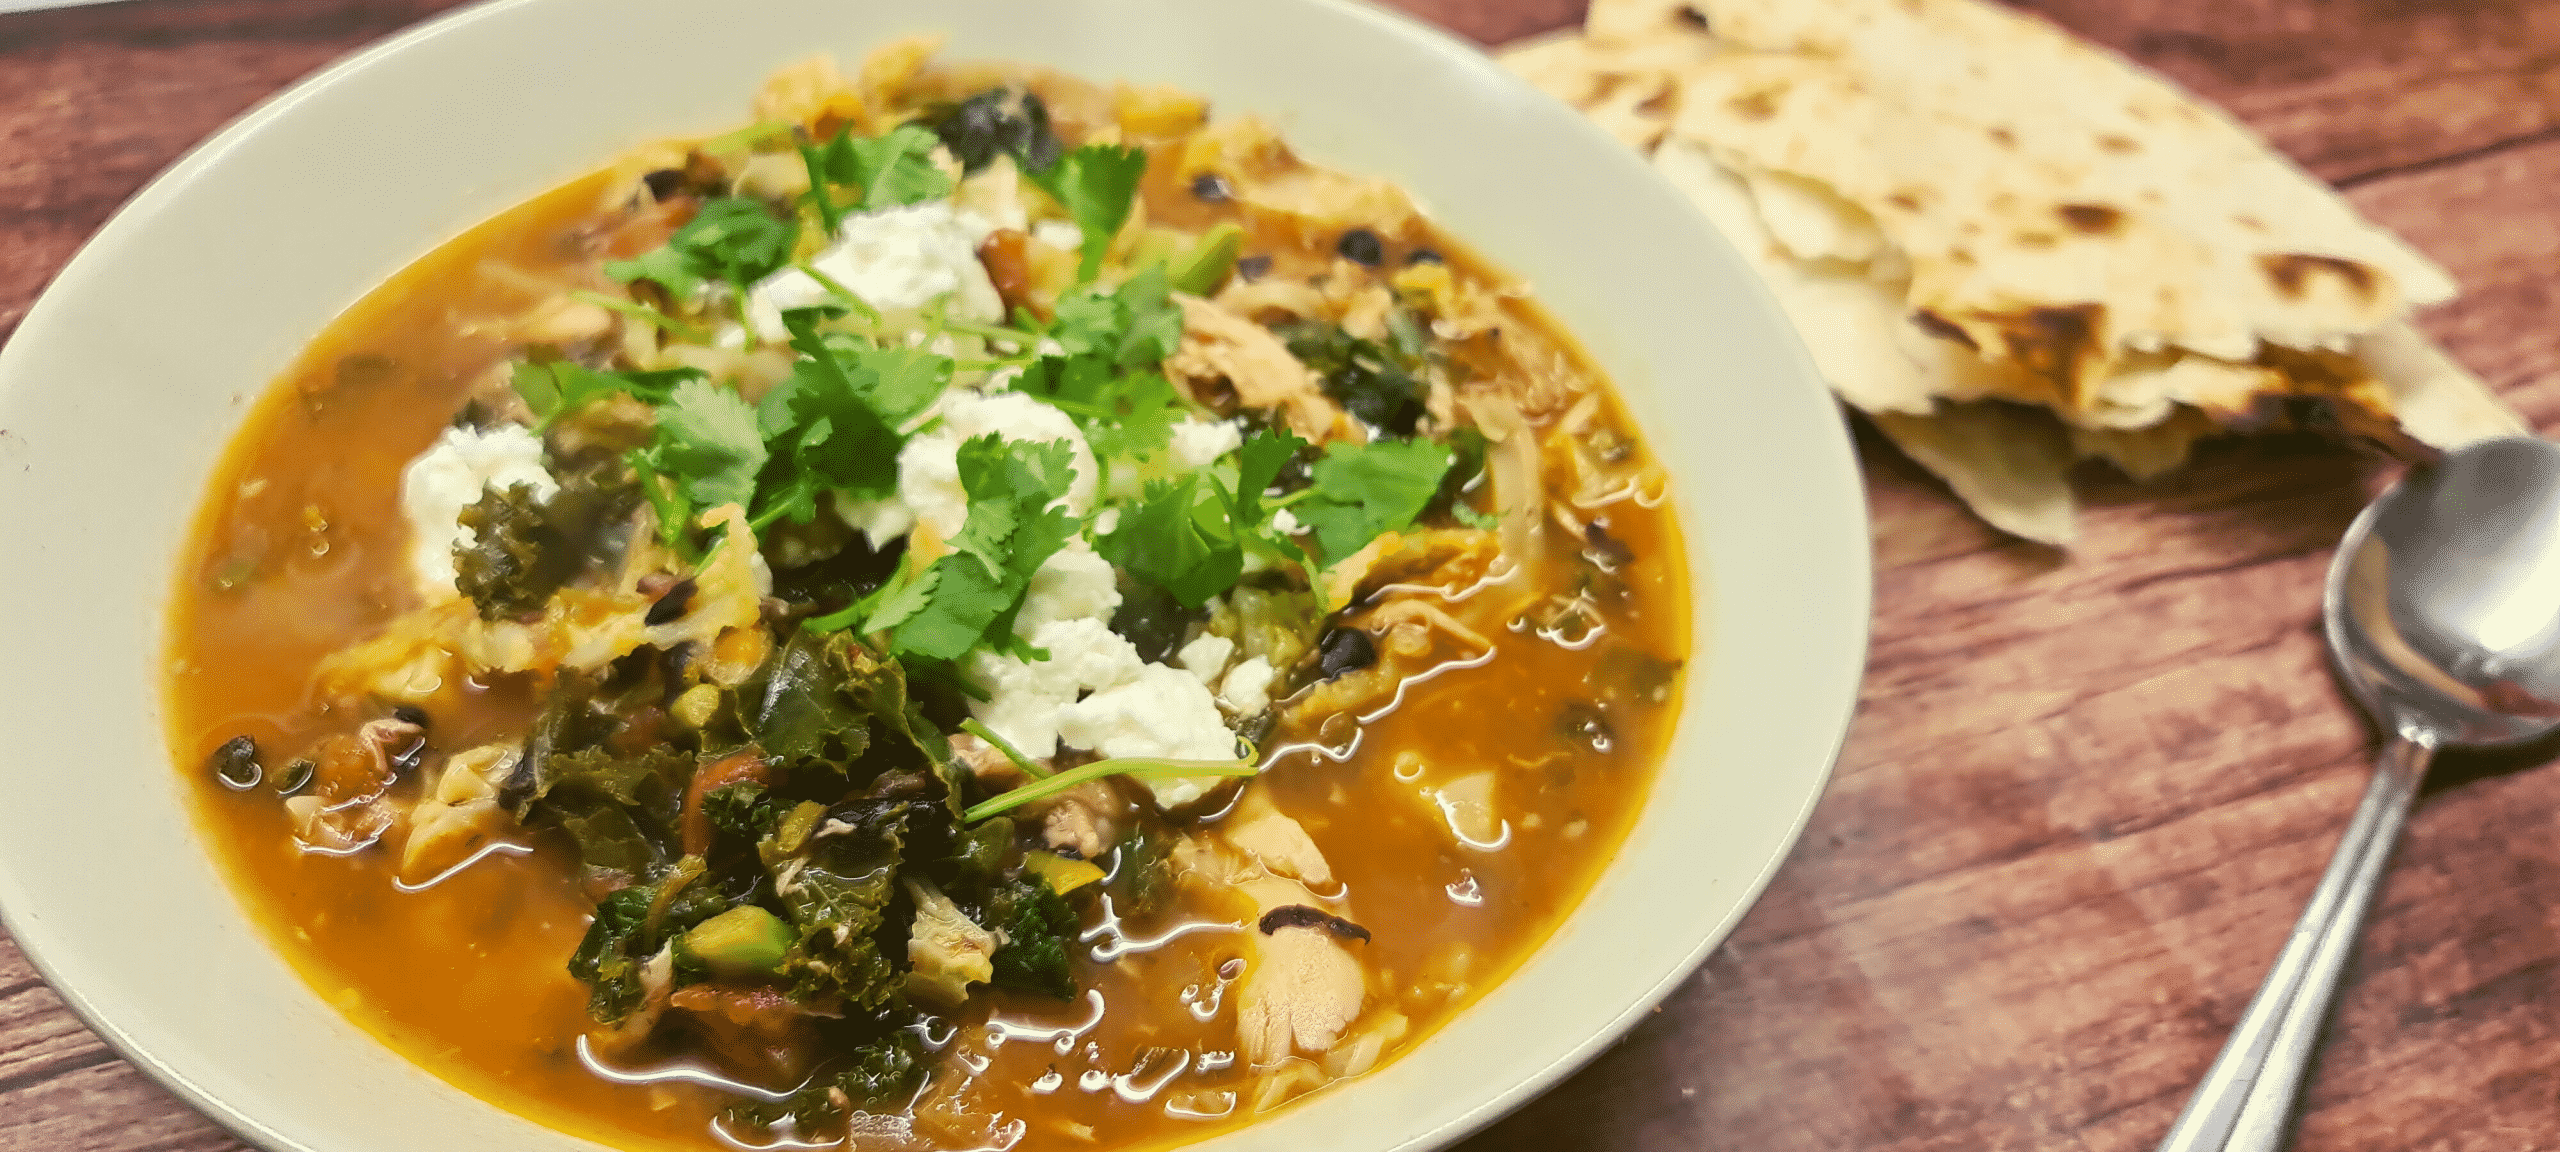 You are currently viewing Chicken, Black Bean and Kale Soup